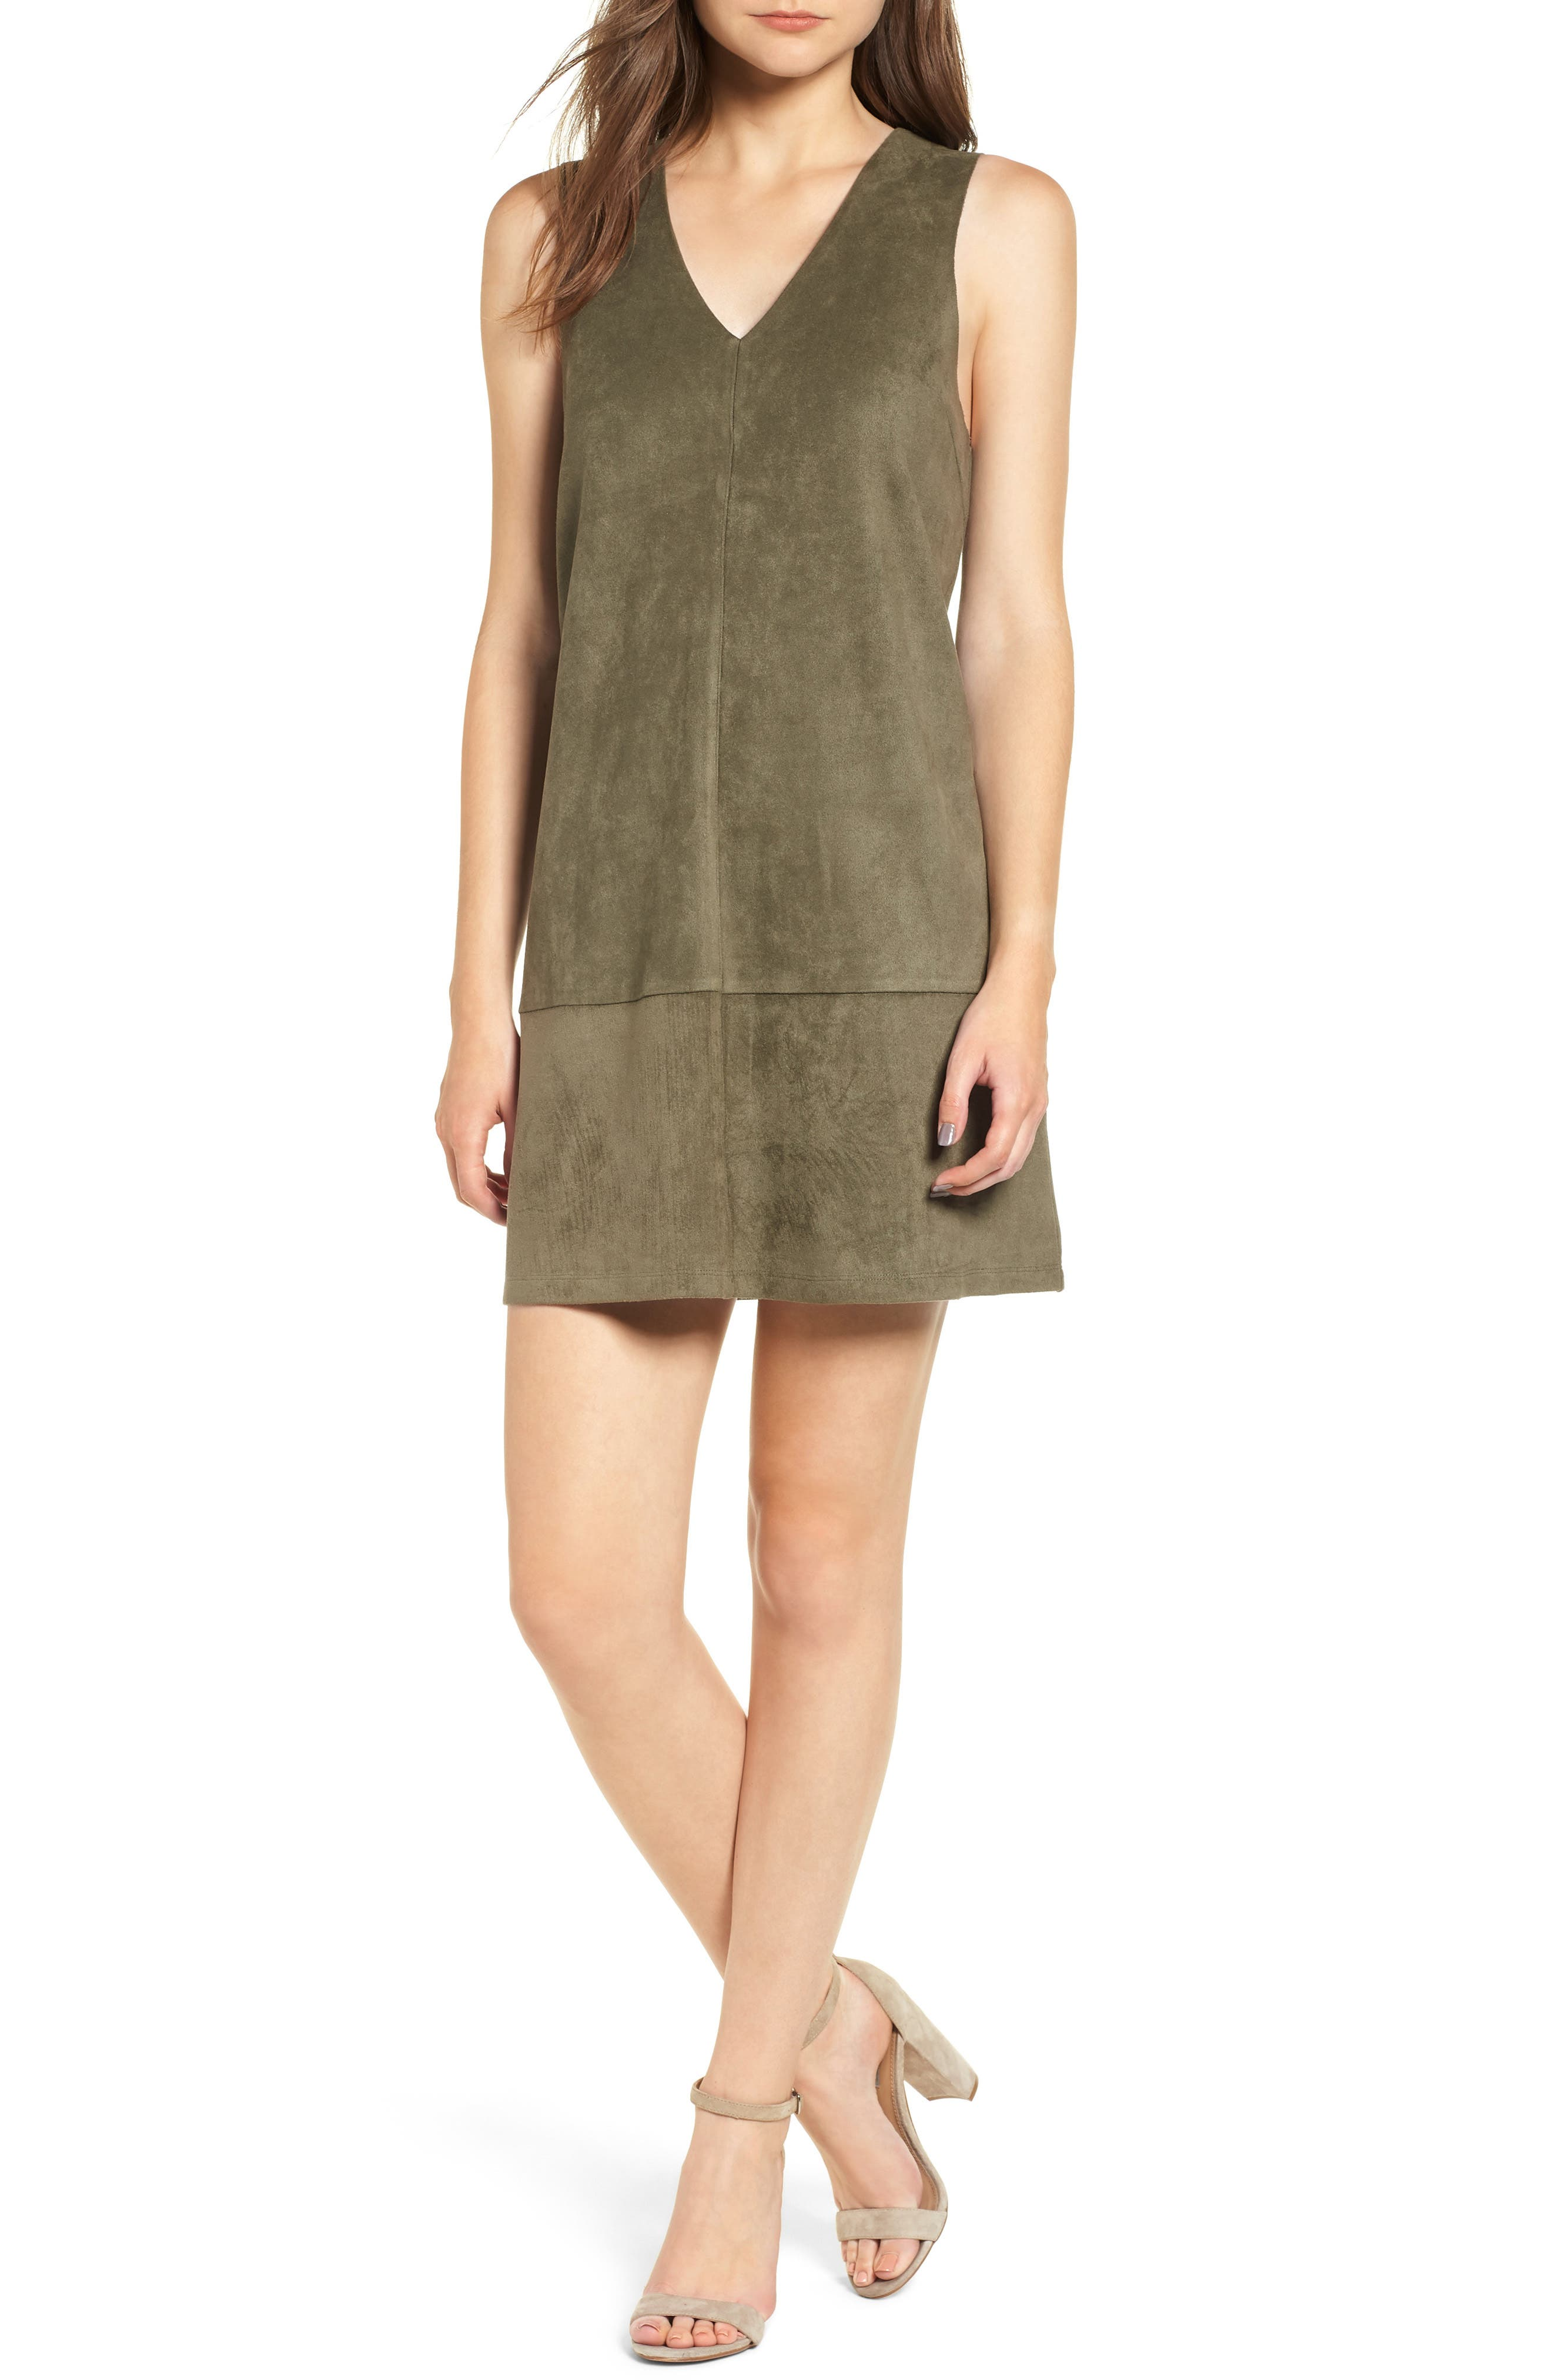 Bishop + Young Sueded Sleeveless Shift Dress,                             Main thumbnail 1, color,                             OLIVE